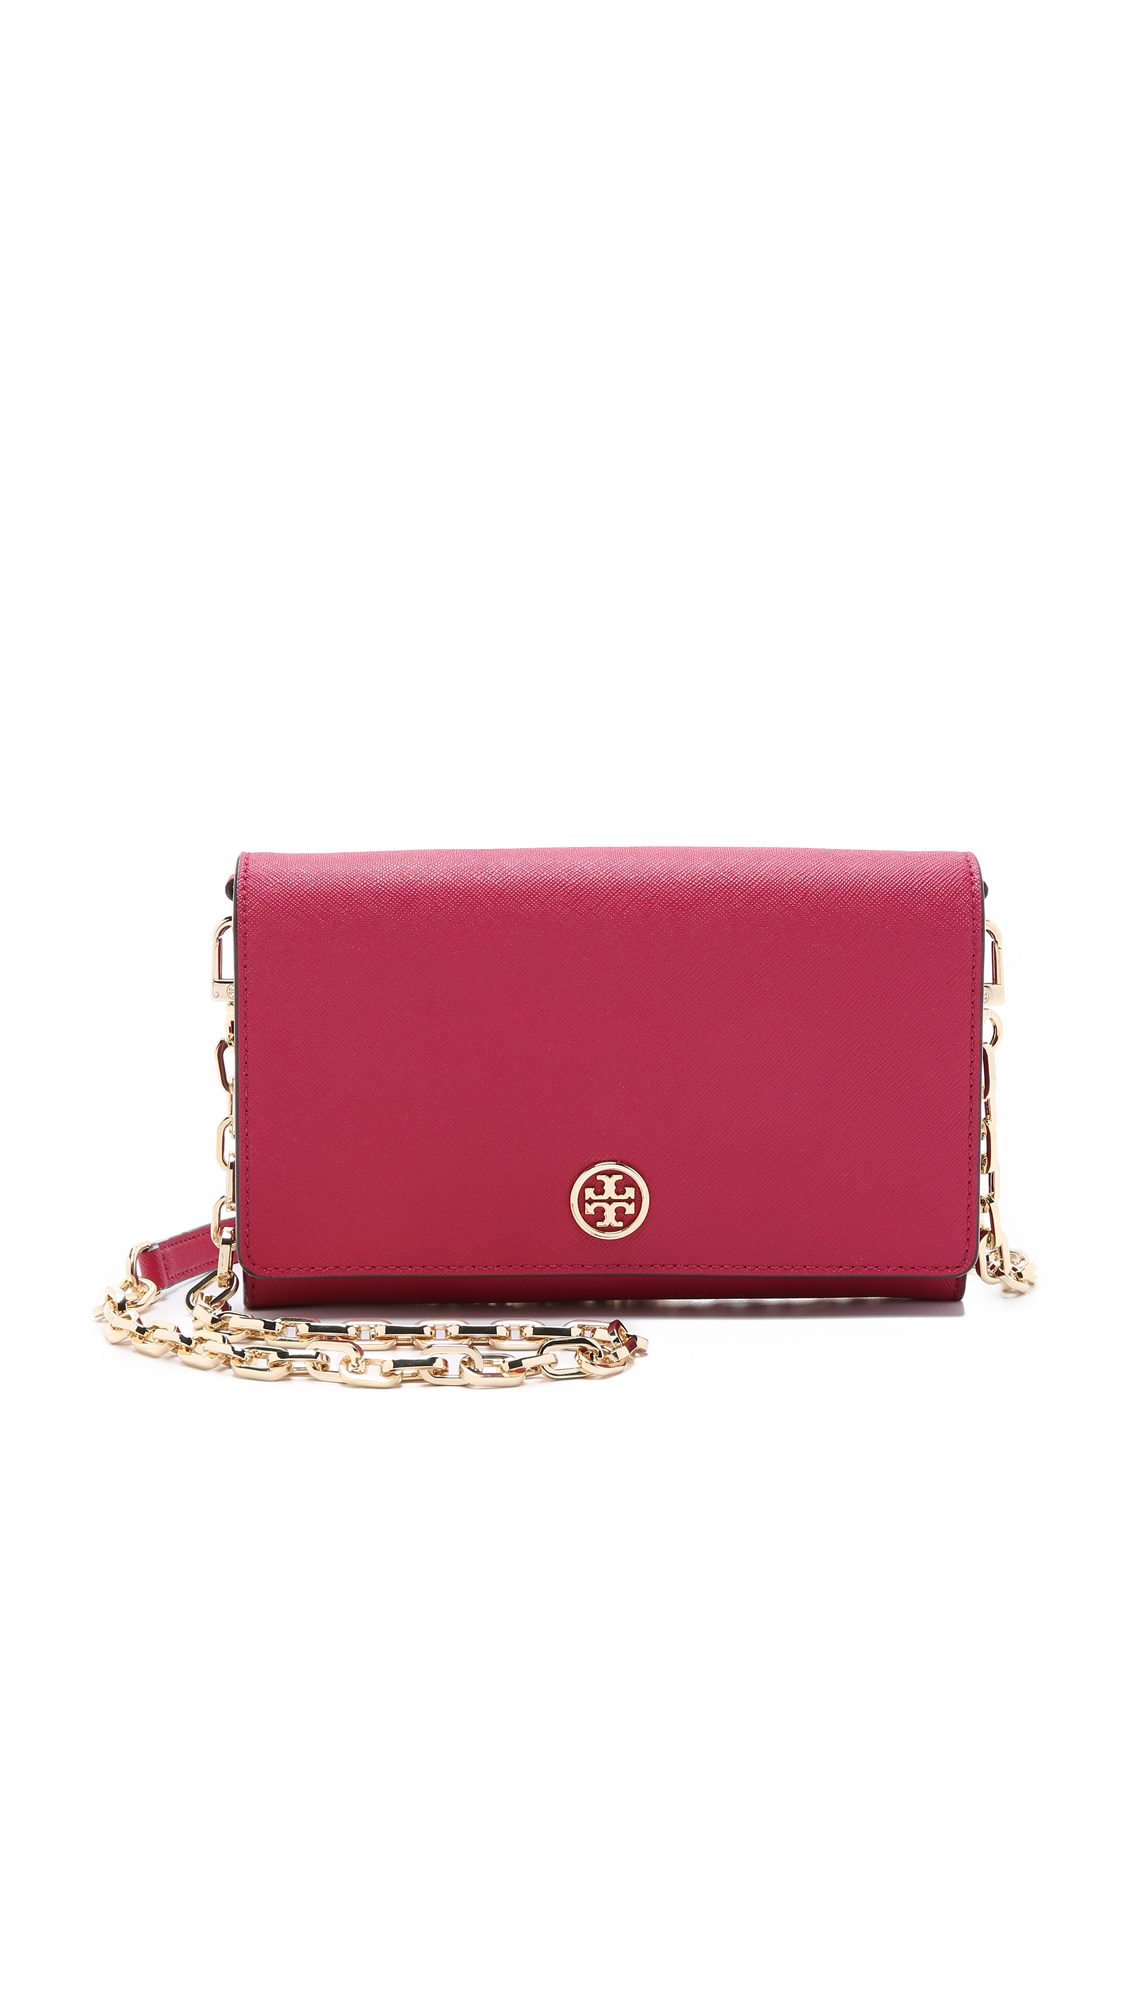 ce49ed543a0 Tory Burch Robinson Chain Wallet - Raspberry in Red - Lyst